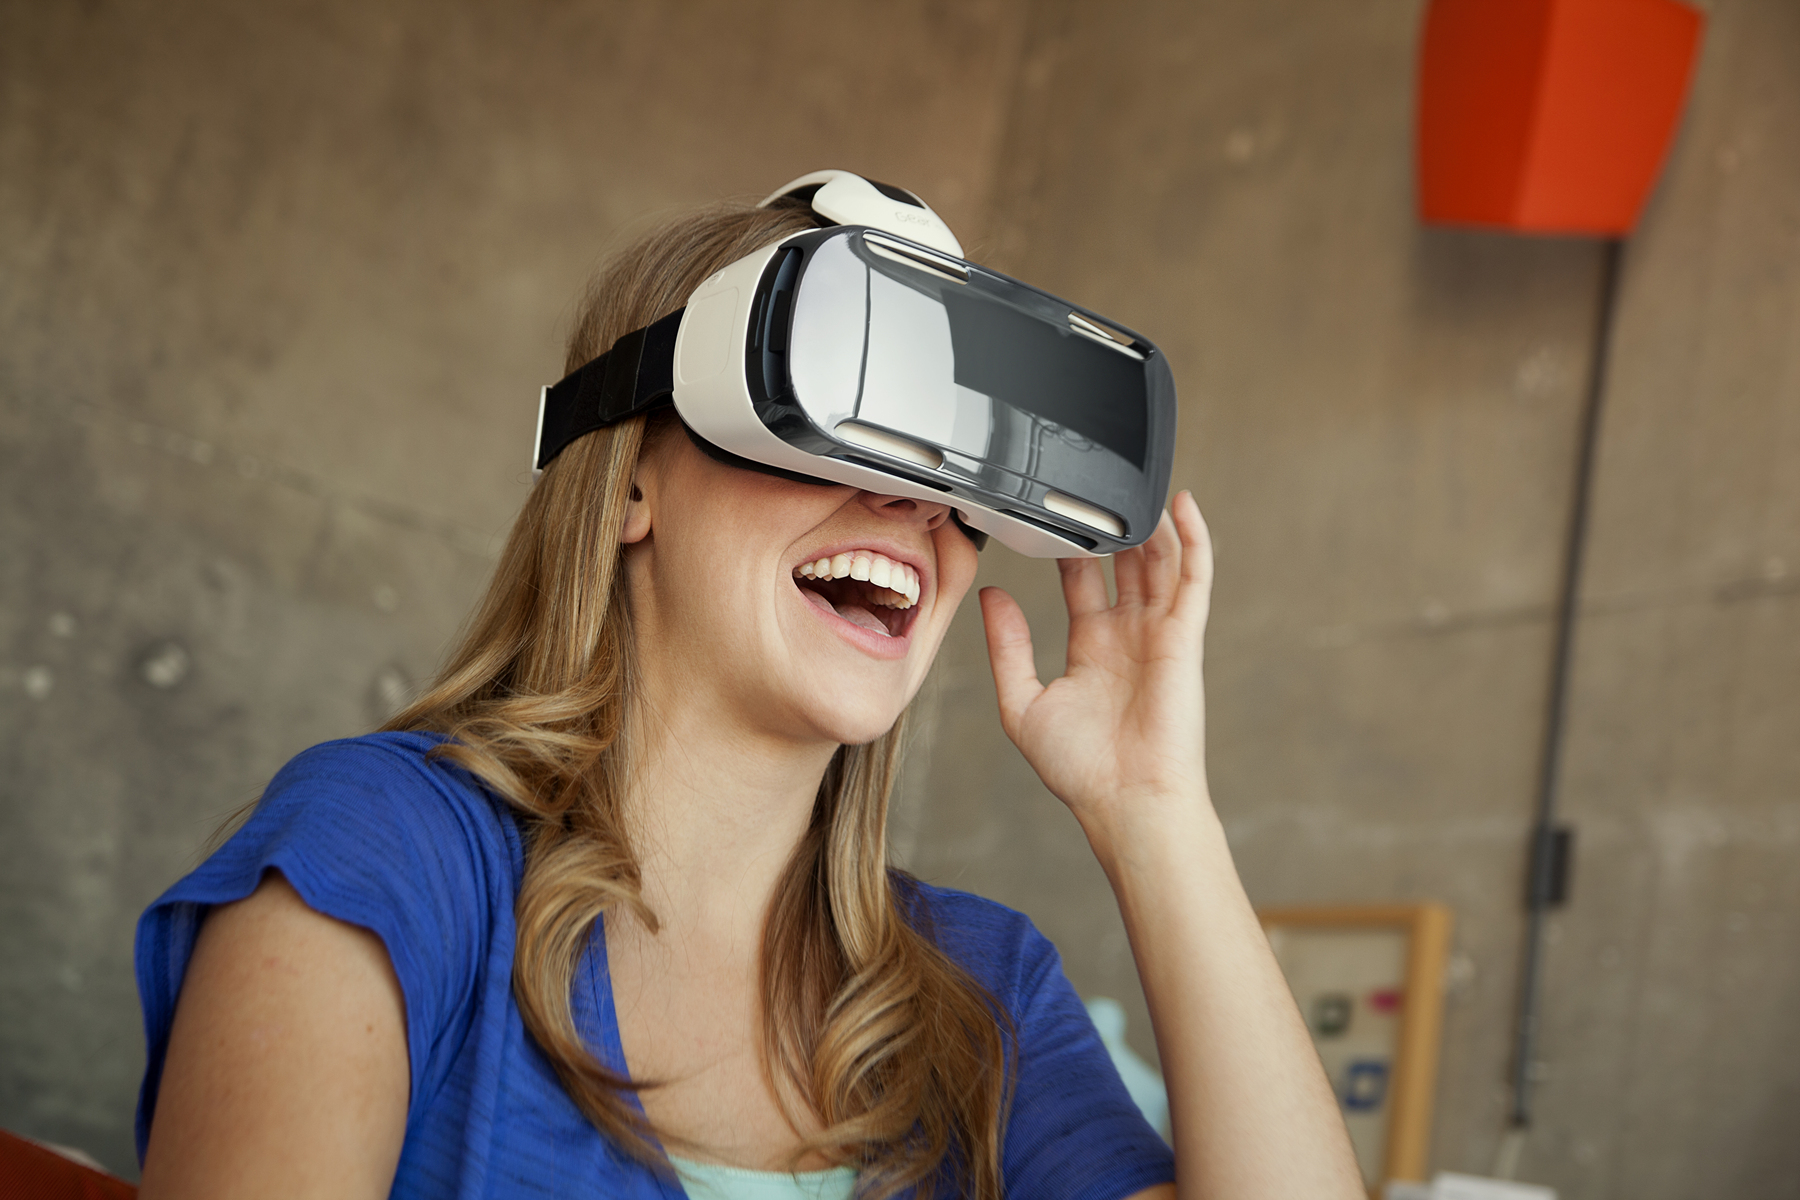 GearVR AndroDollar 2 - Samsung Unveils the Gear VR Headset; A Virtual Reality Accessory For The Galaxy Note 4